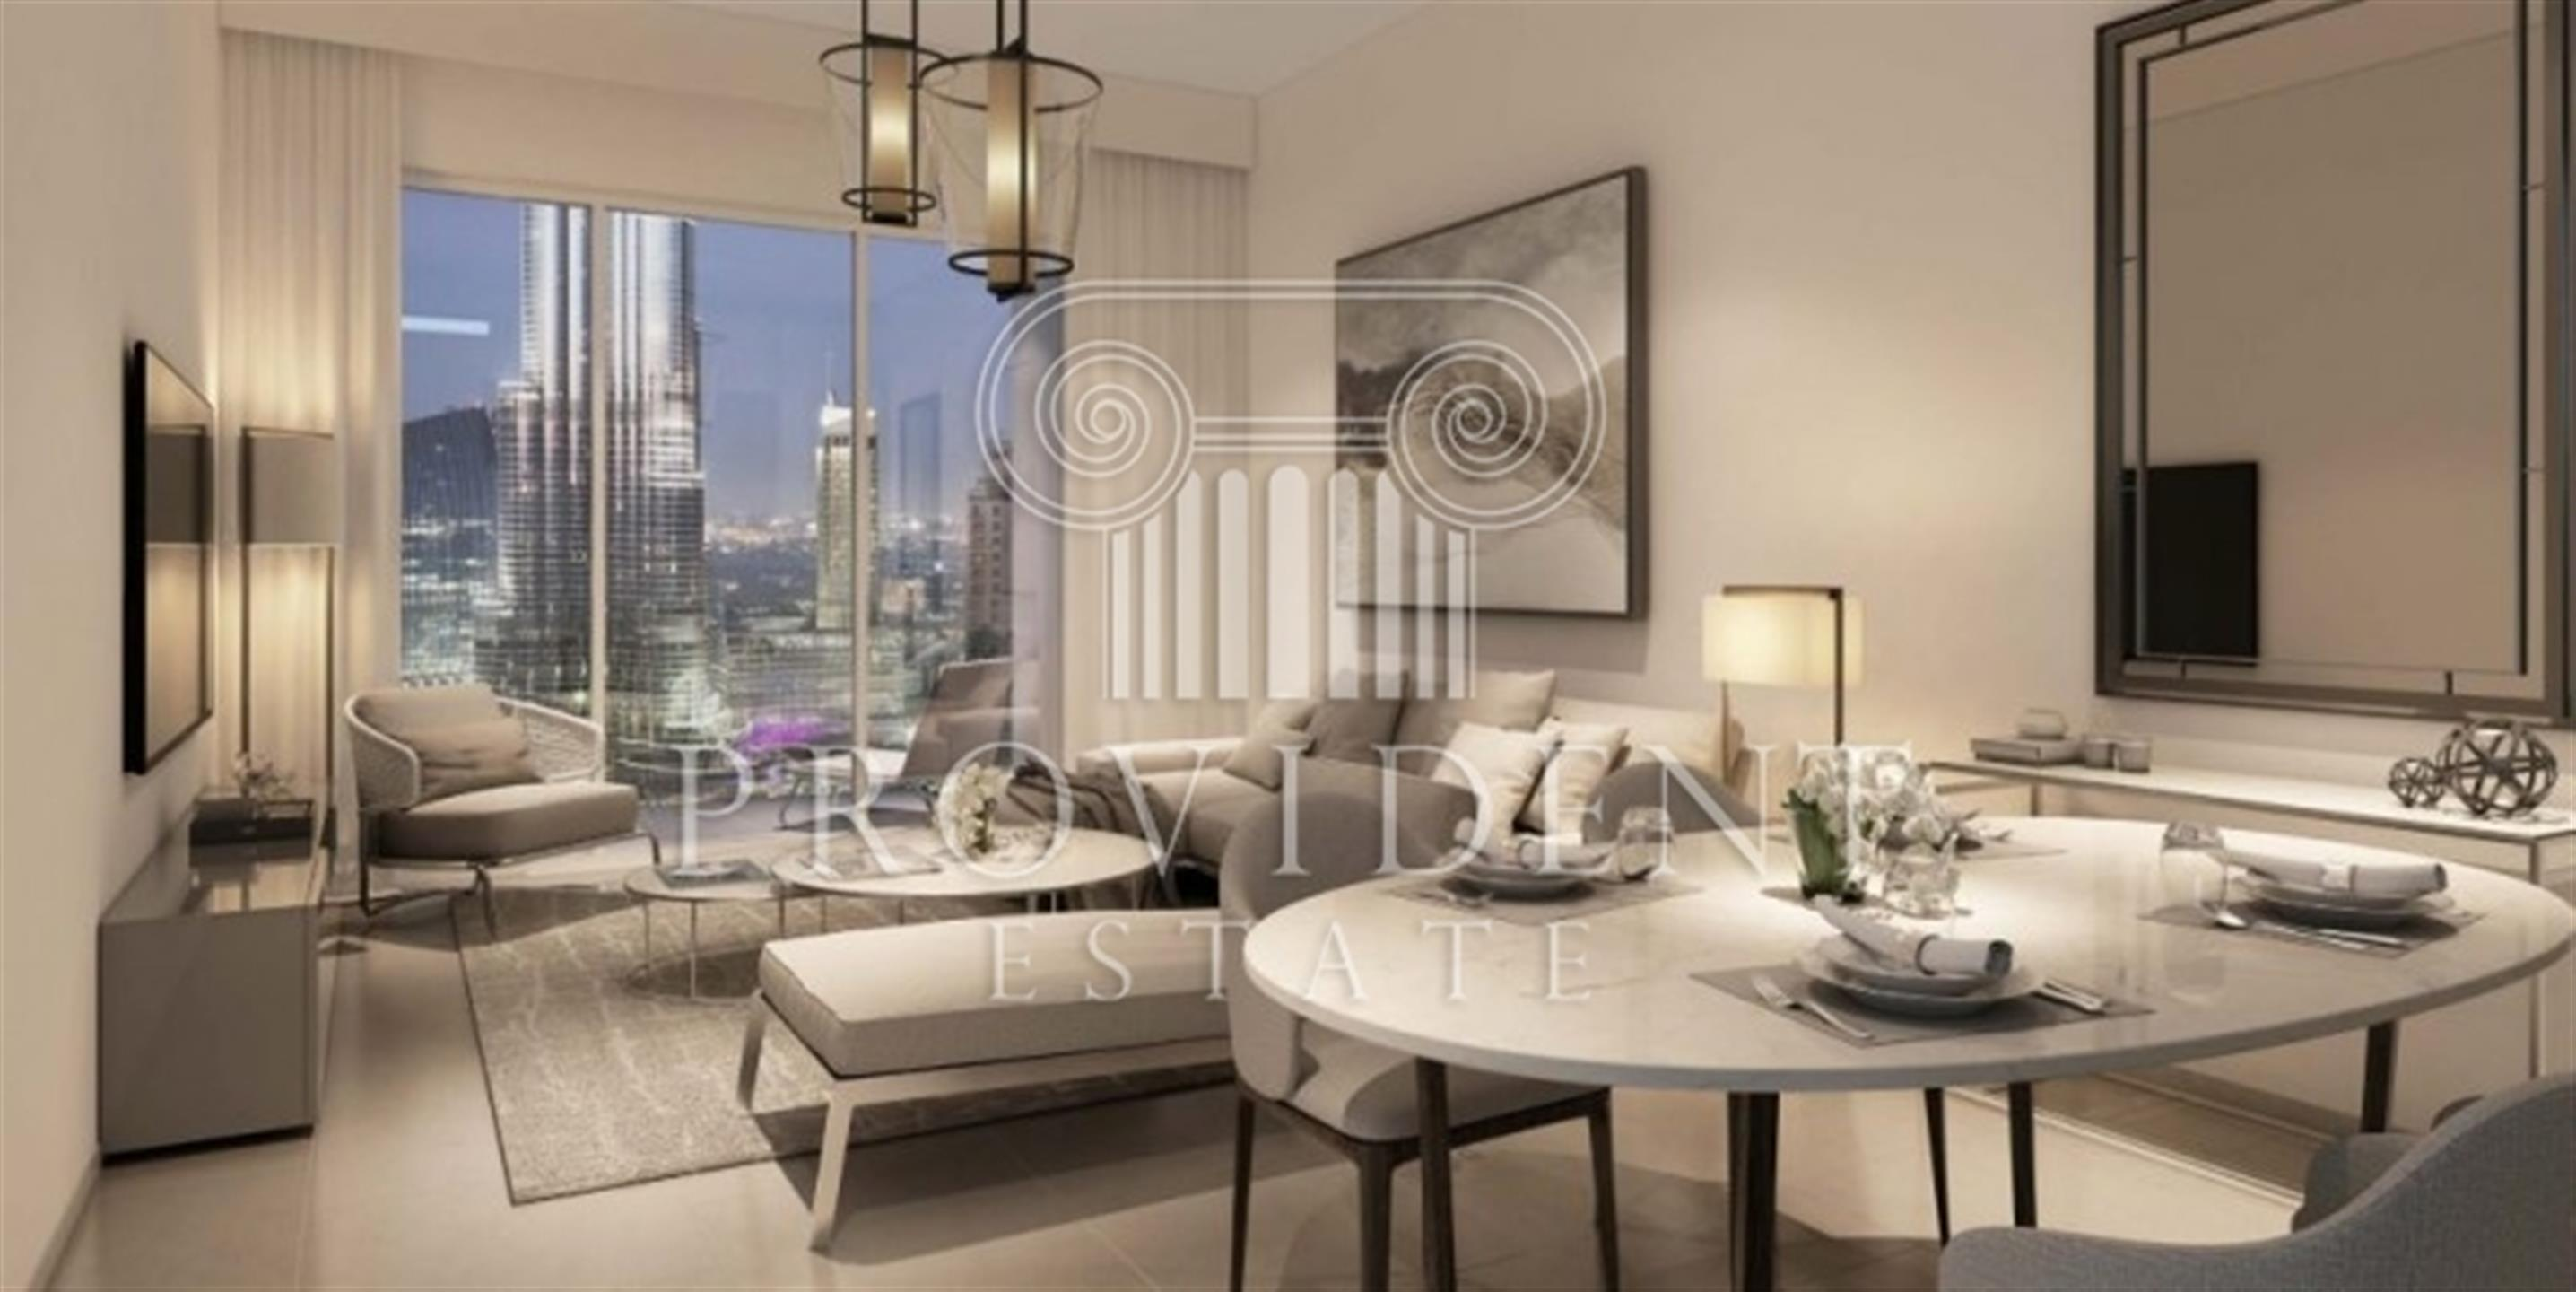 Property - Apartment for sale in Downtown- Dubai - Act One Act Two Towers